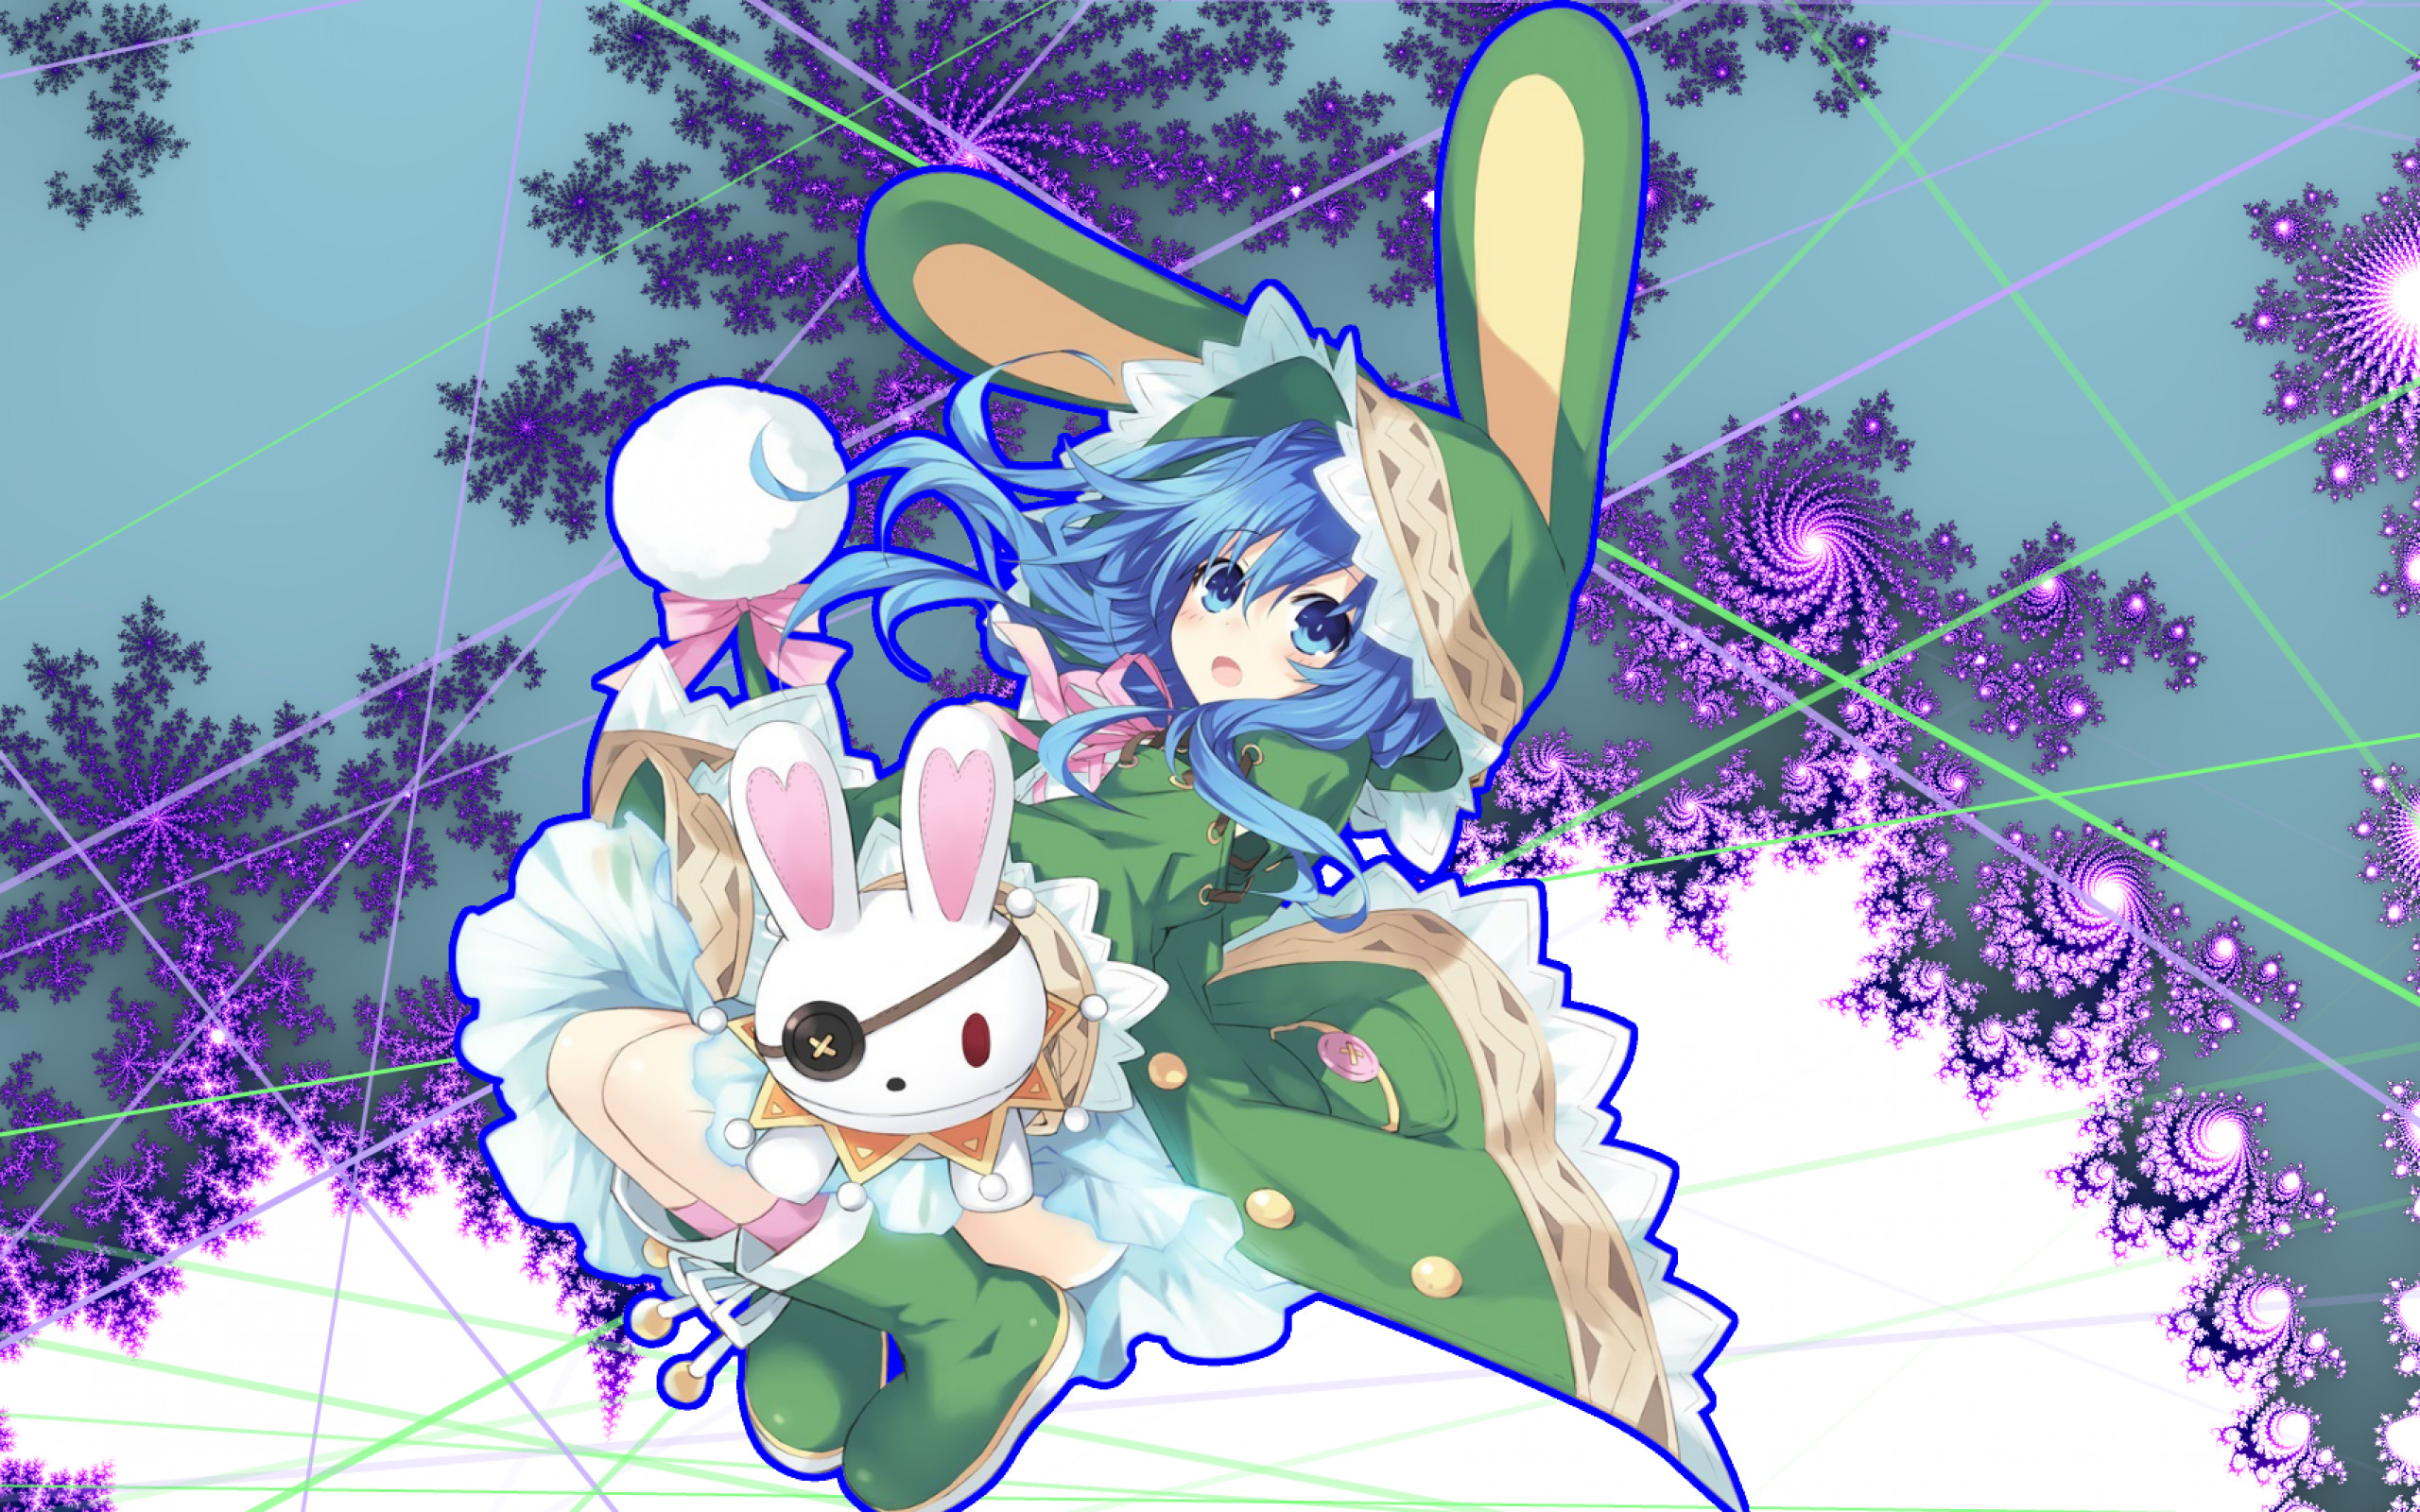 2560x1600 Date A Live, Yoshino, Loli, Blue Hair